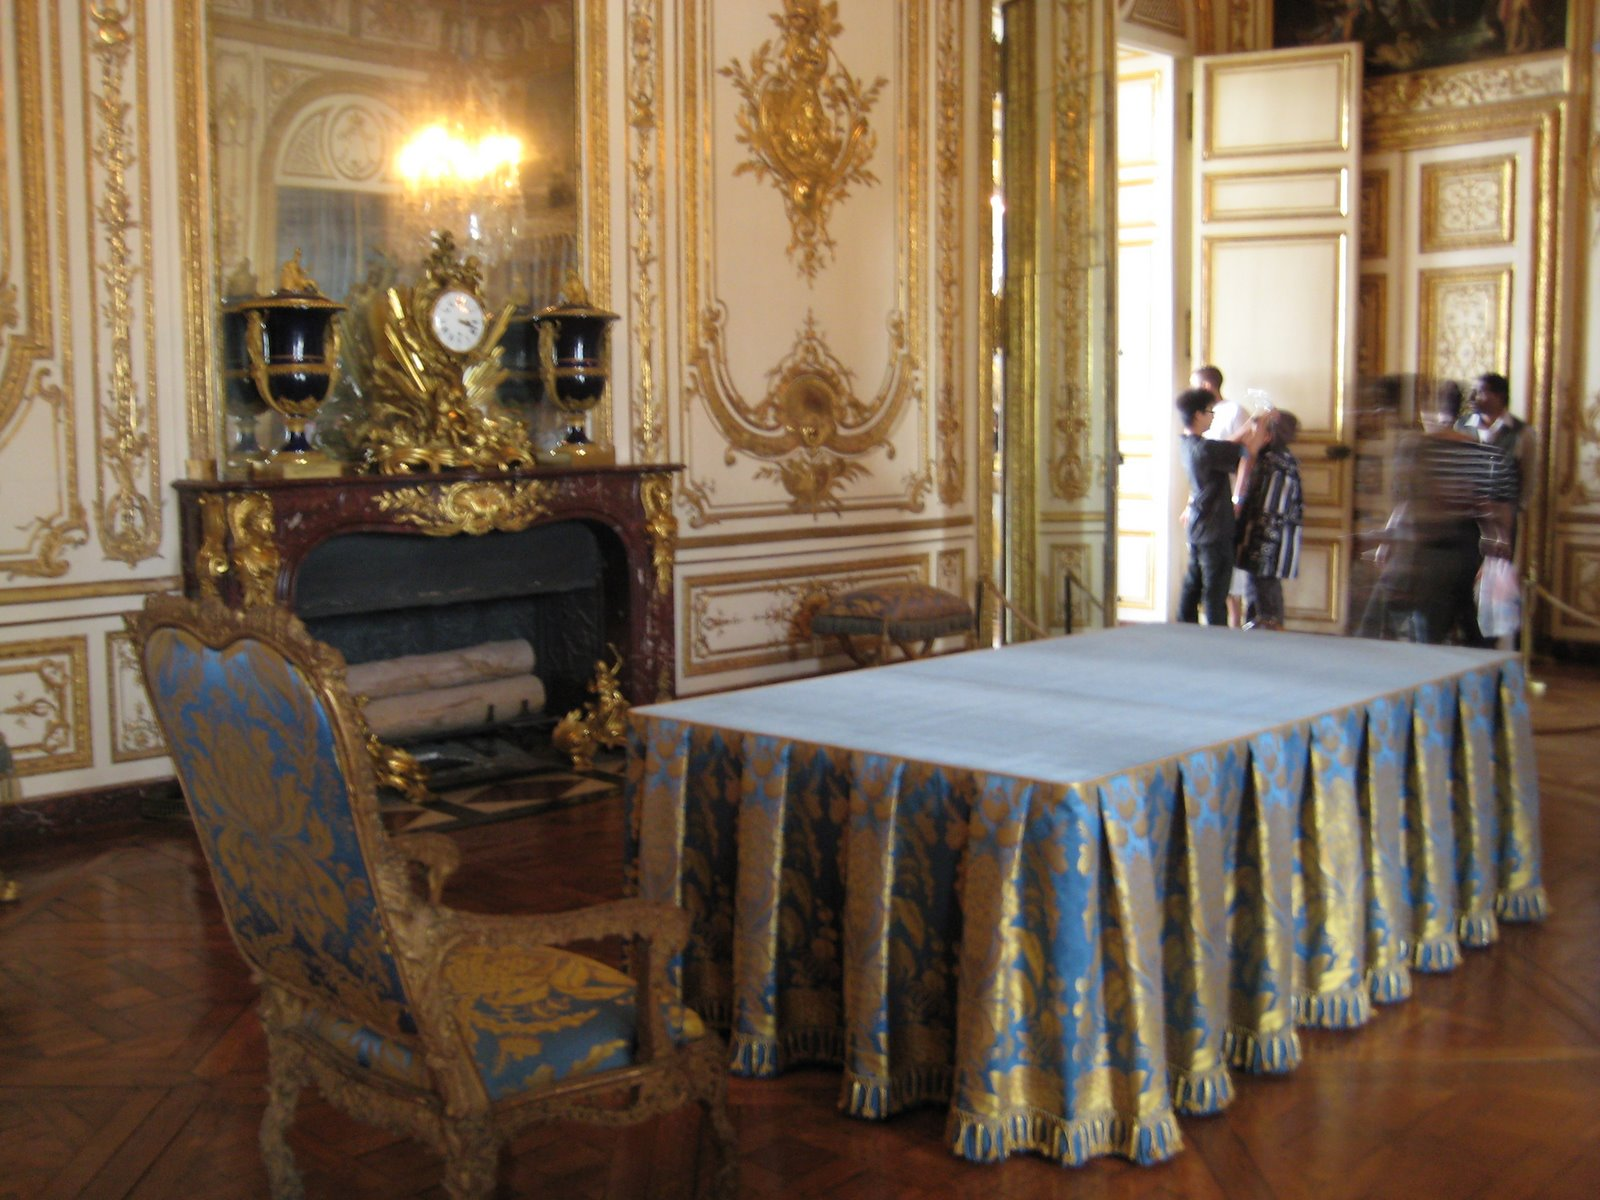 versailles chat sites 100% free versailles chat rooms at mingle2com join the hottest versailles chatrooms online mingle2's versailles chat rooms are full of fun, sexy singles like you.